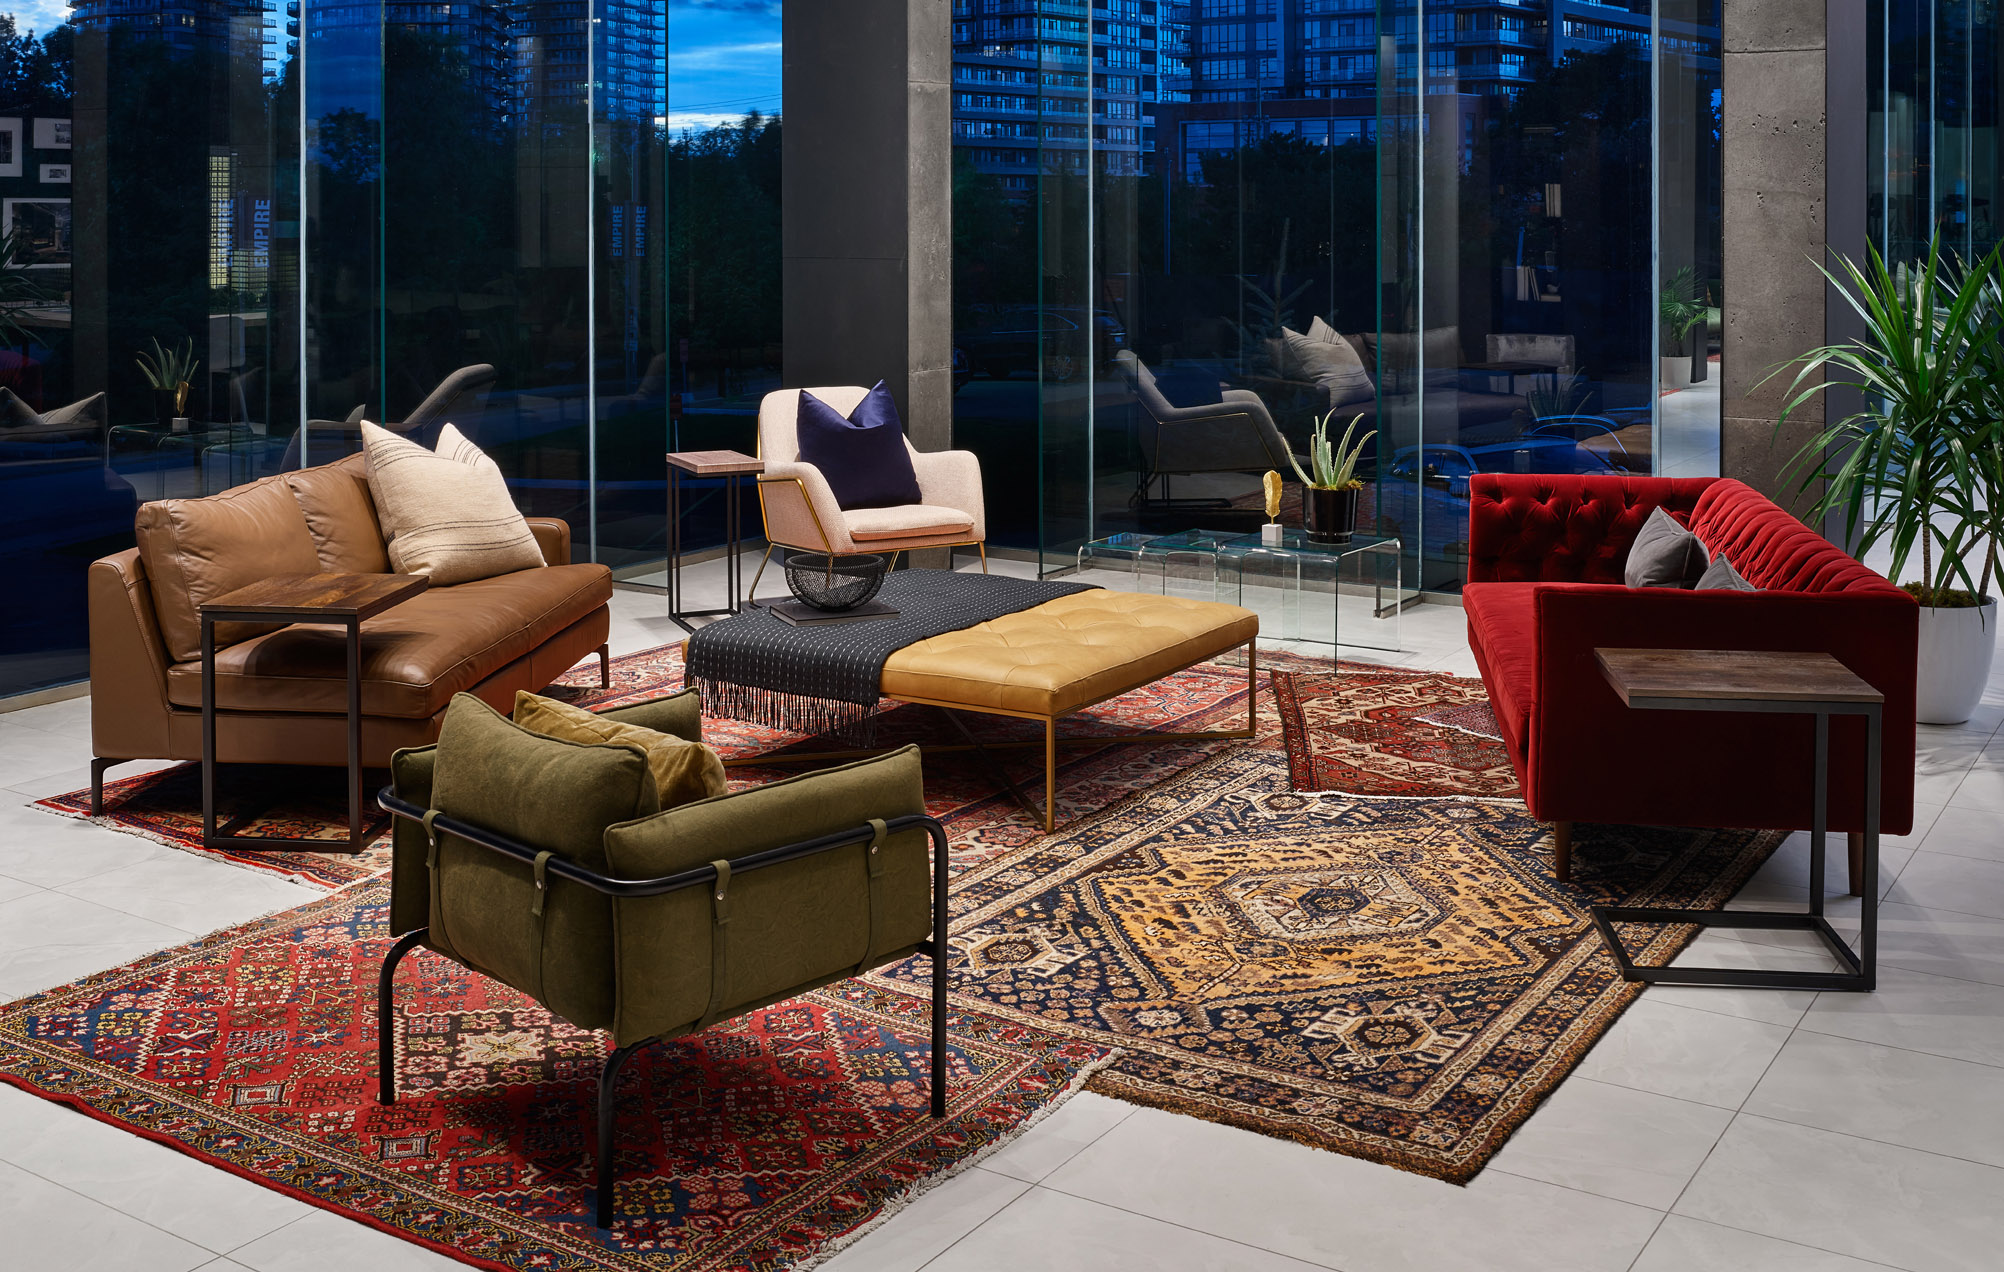 Empire Phoenix lobby with bright red sofa, layered Persian rugs, and large windows